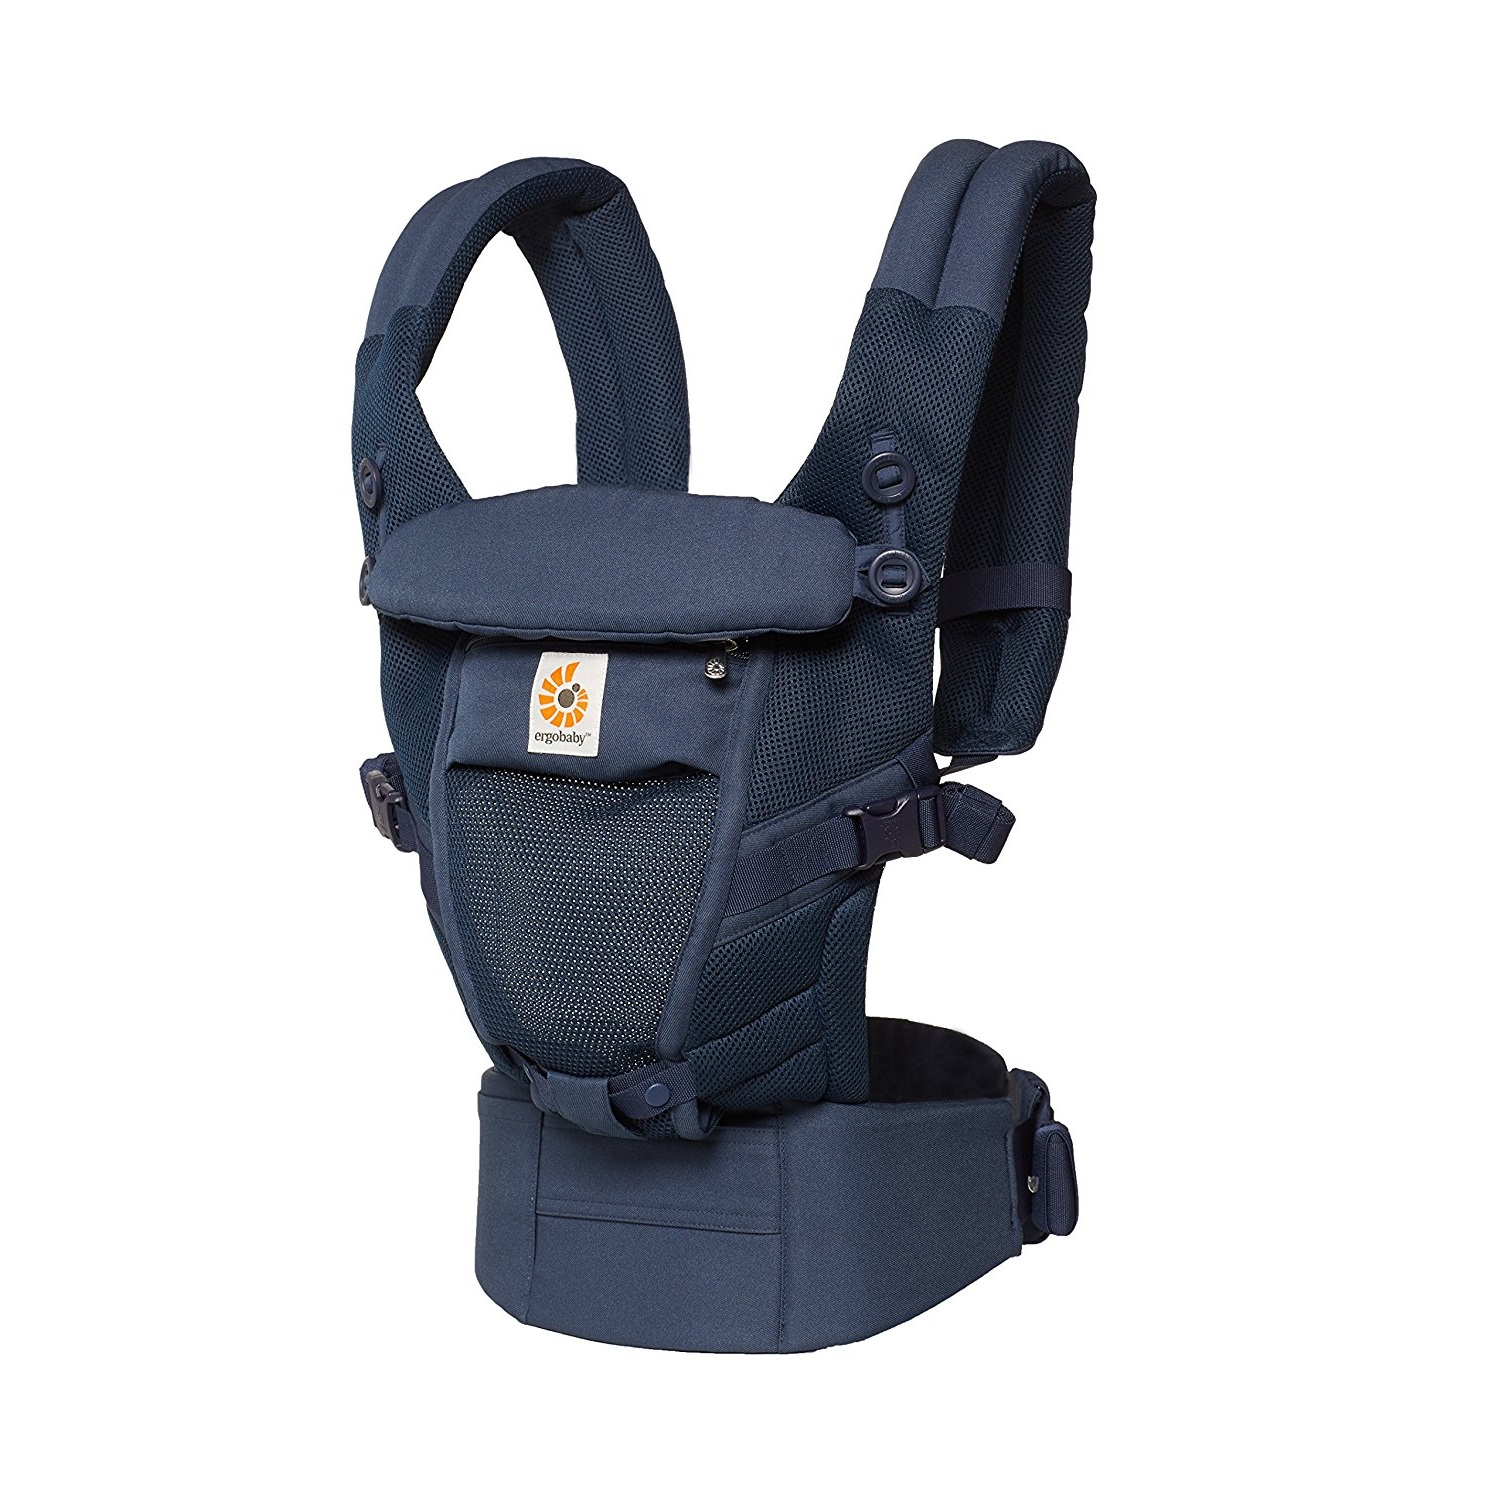 Ergobaby Adapt Cool Ergonomic Multi-Position Baby Carrier by Ergo Baby